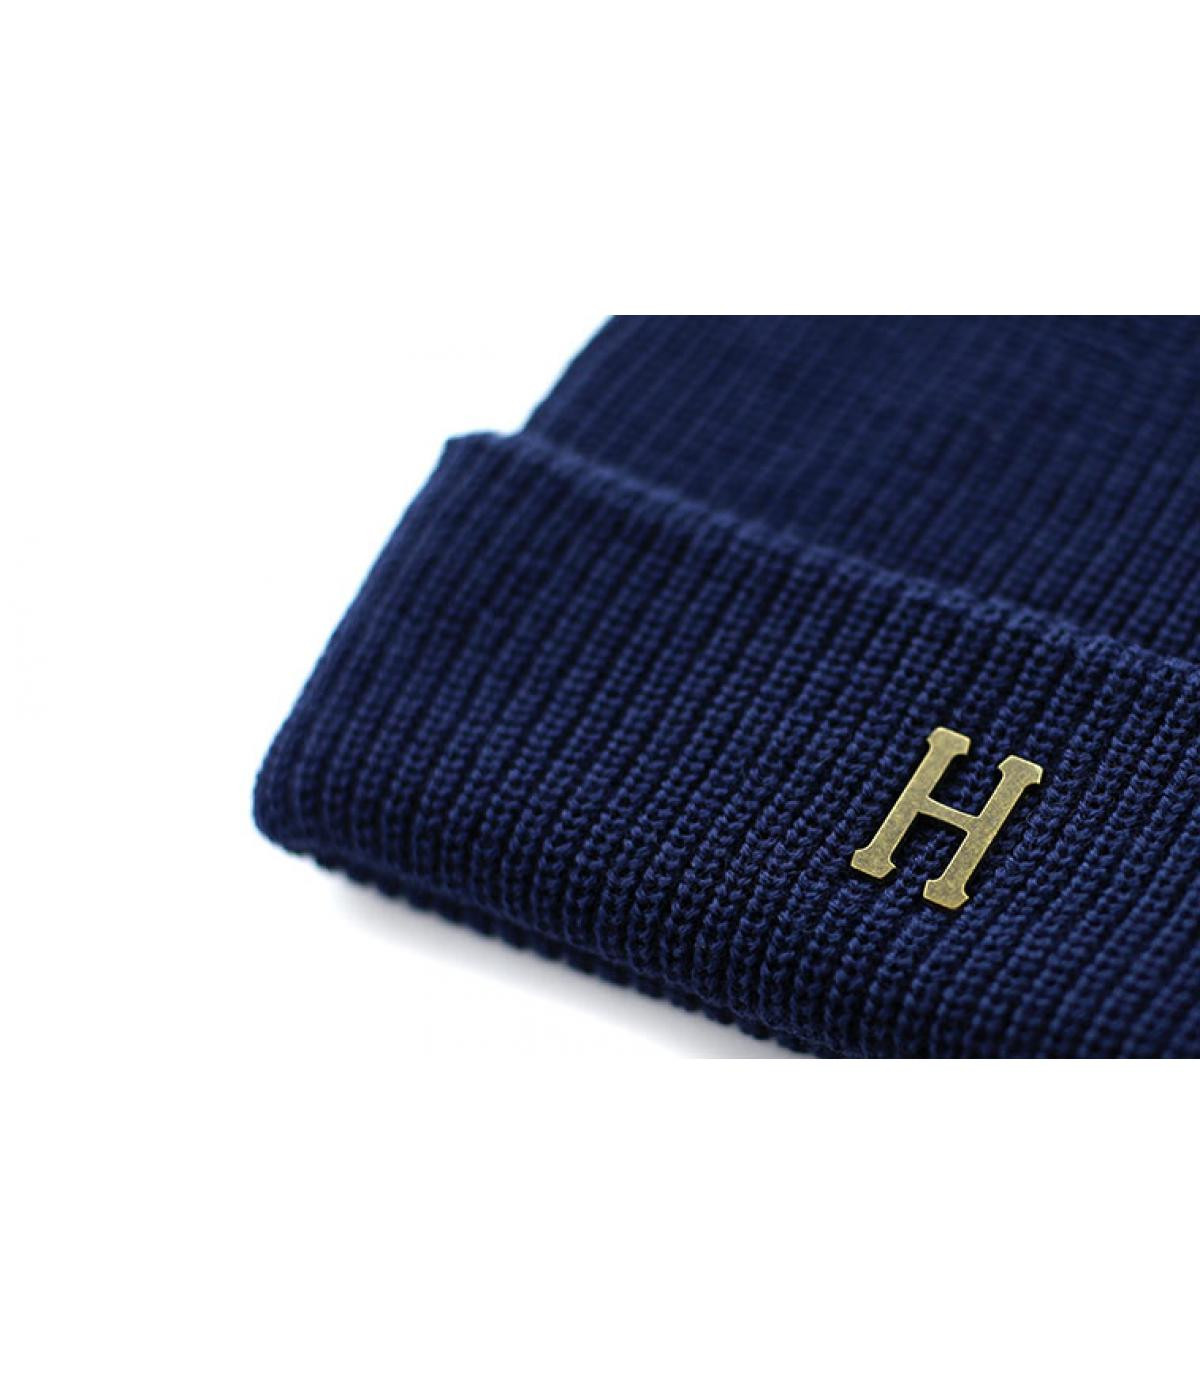 Détails Brass H Military Beanie navy - image 3